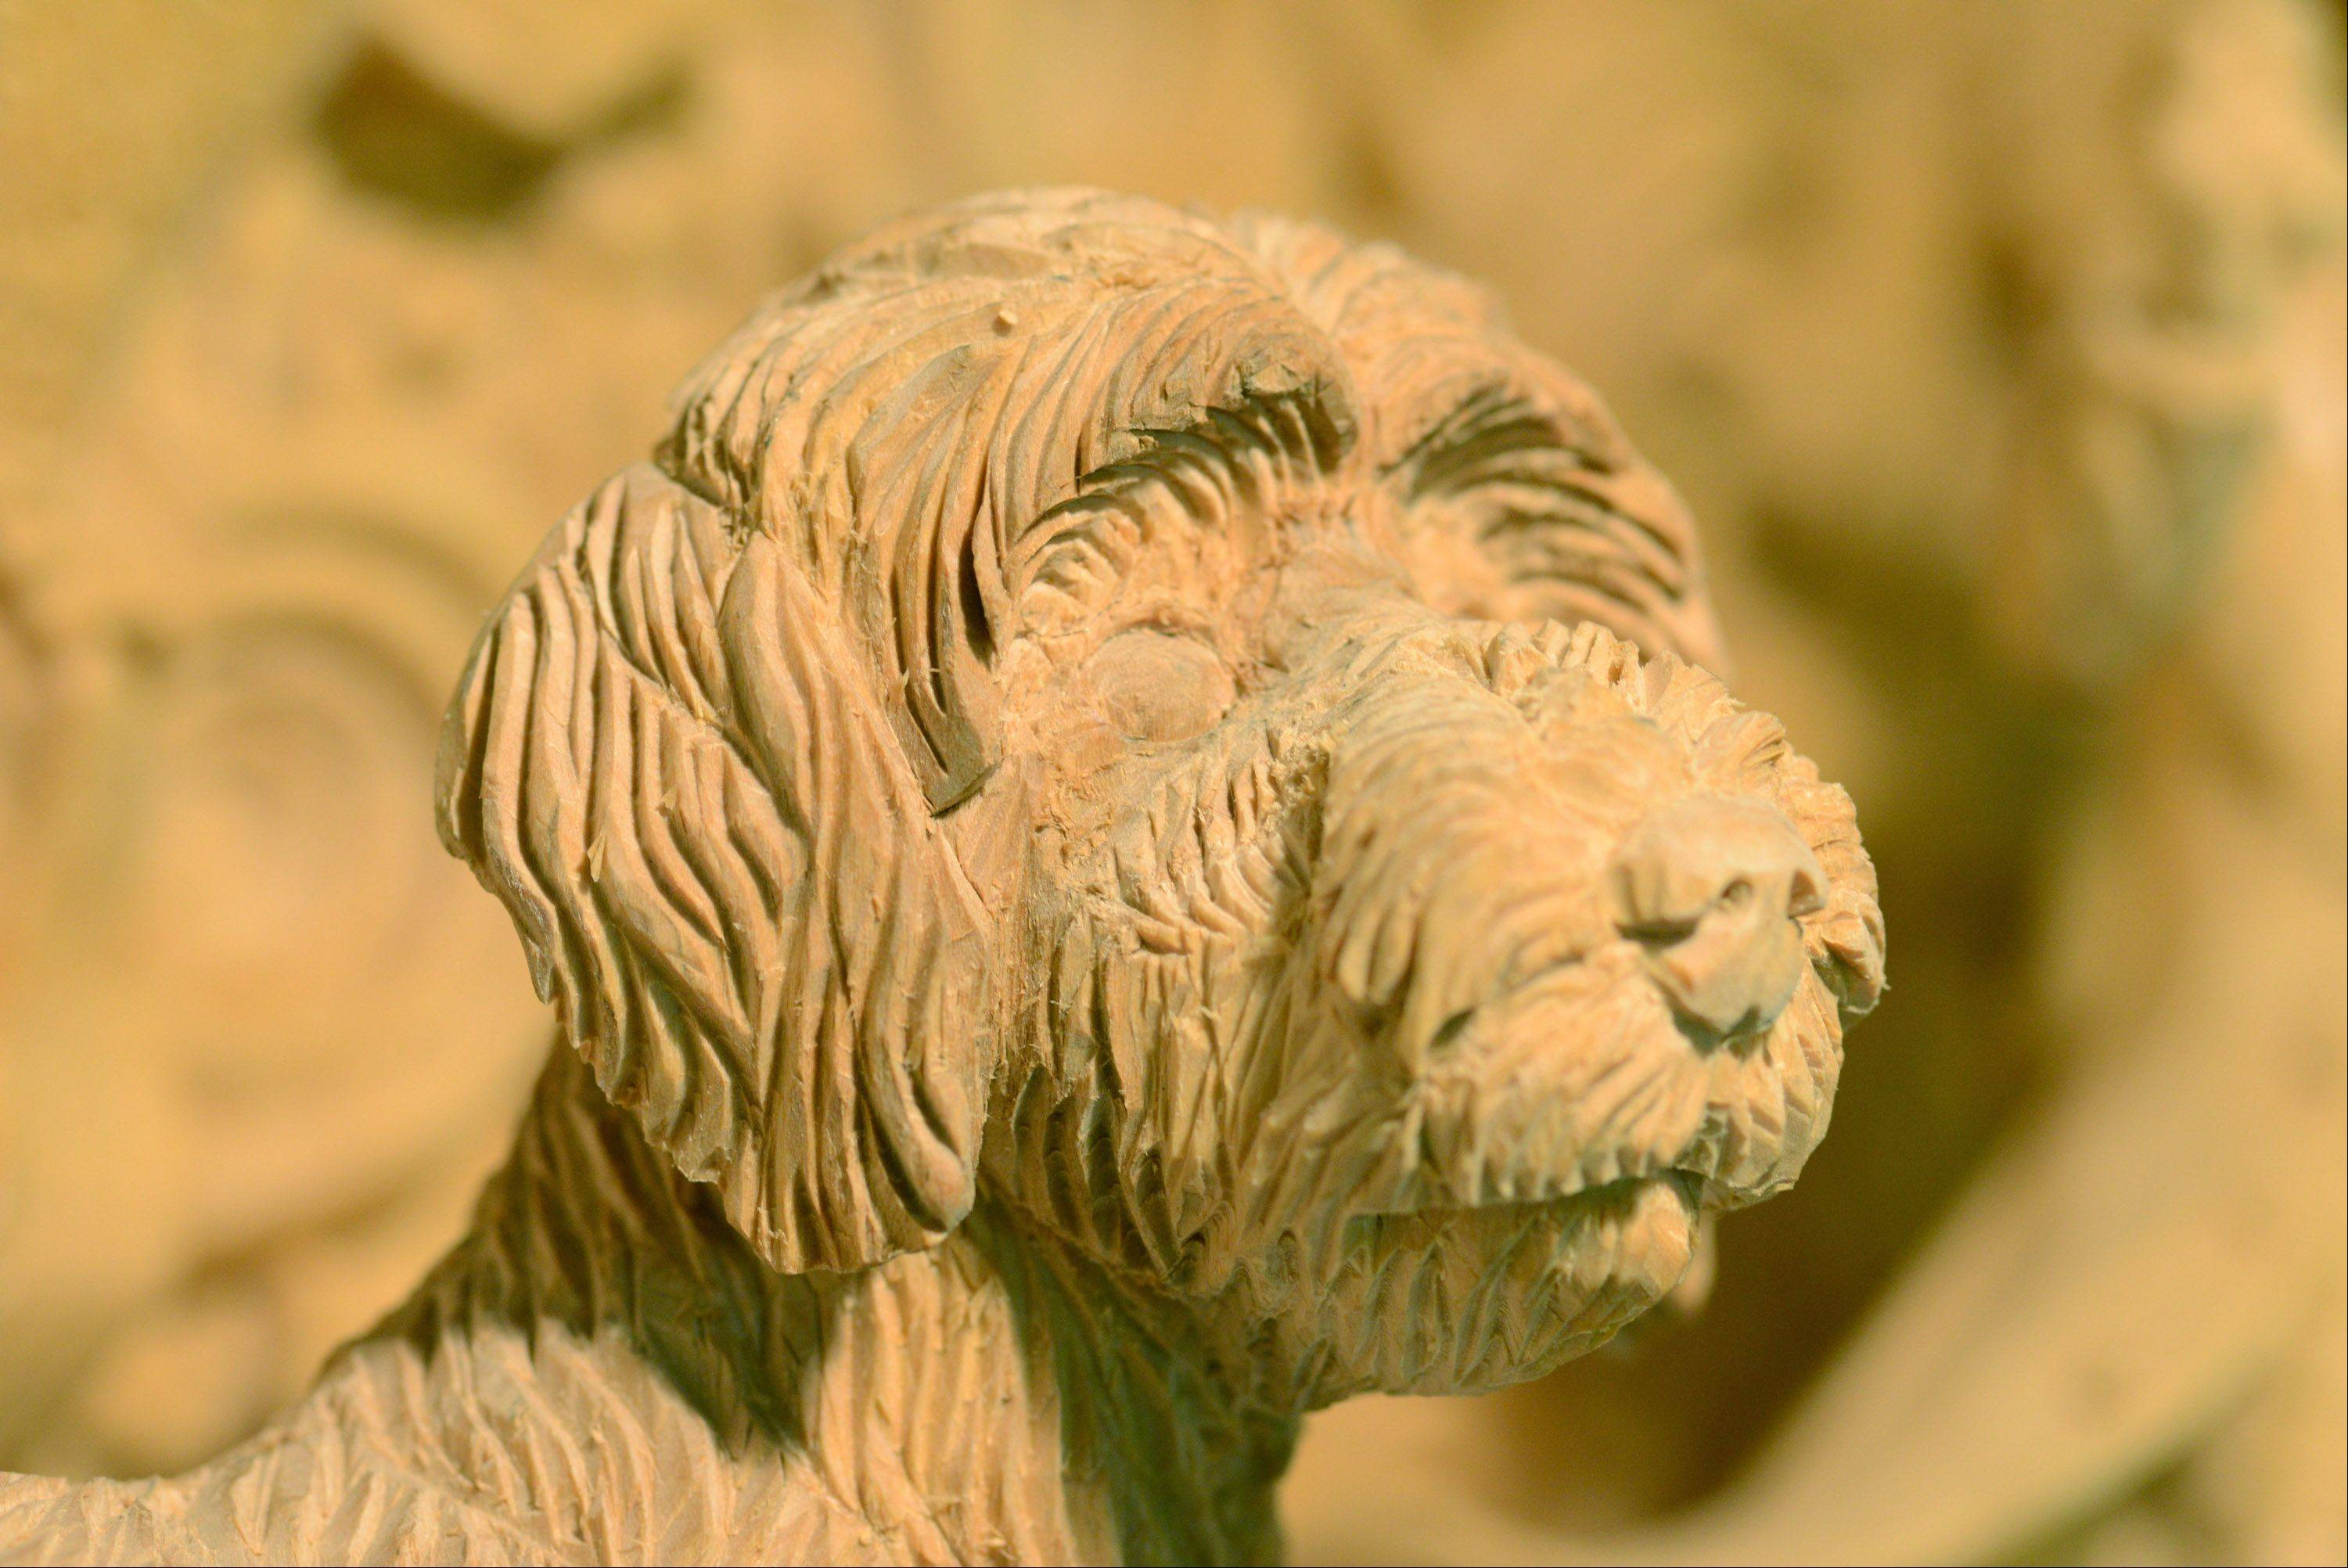 Weiser enjoys the realism of animal figures like this one which he painstakingly carved.